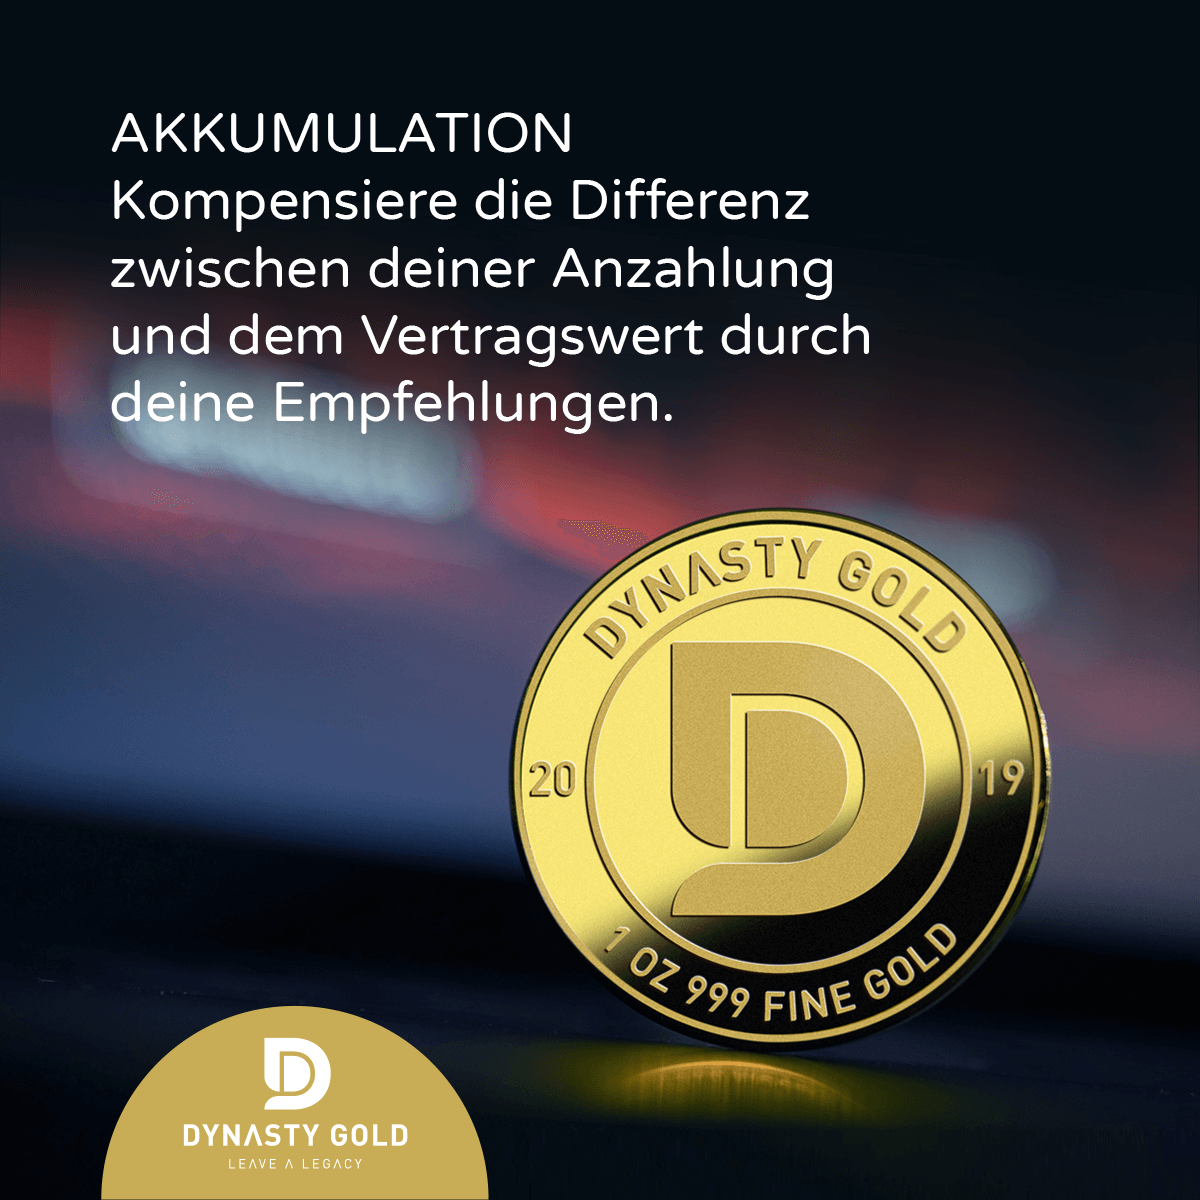 Akkumulationsplan von Dynasty Gold